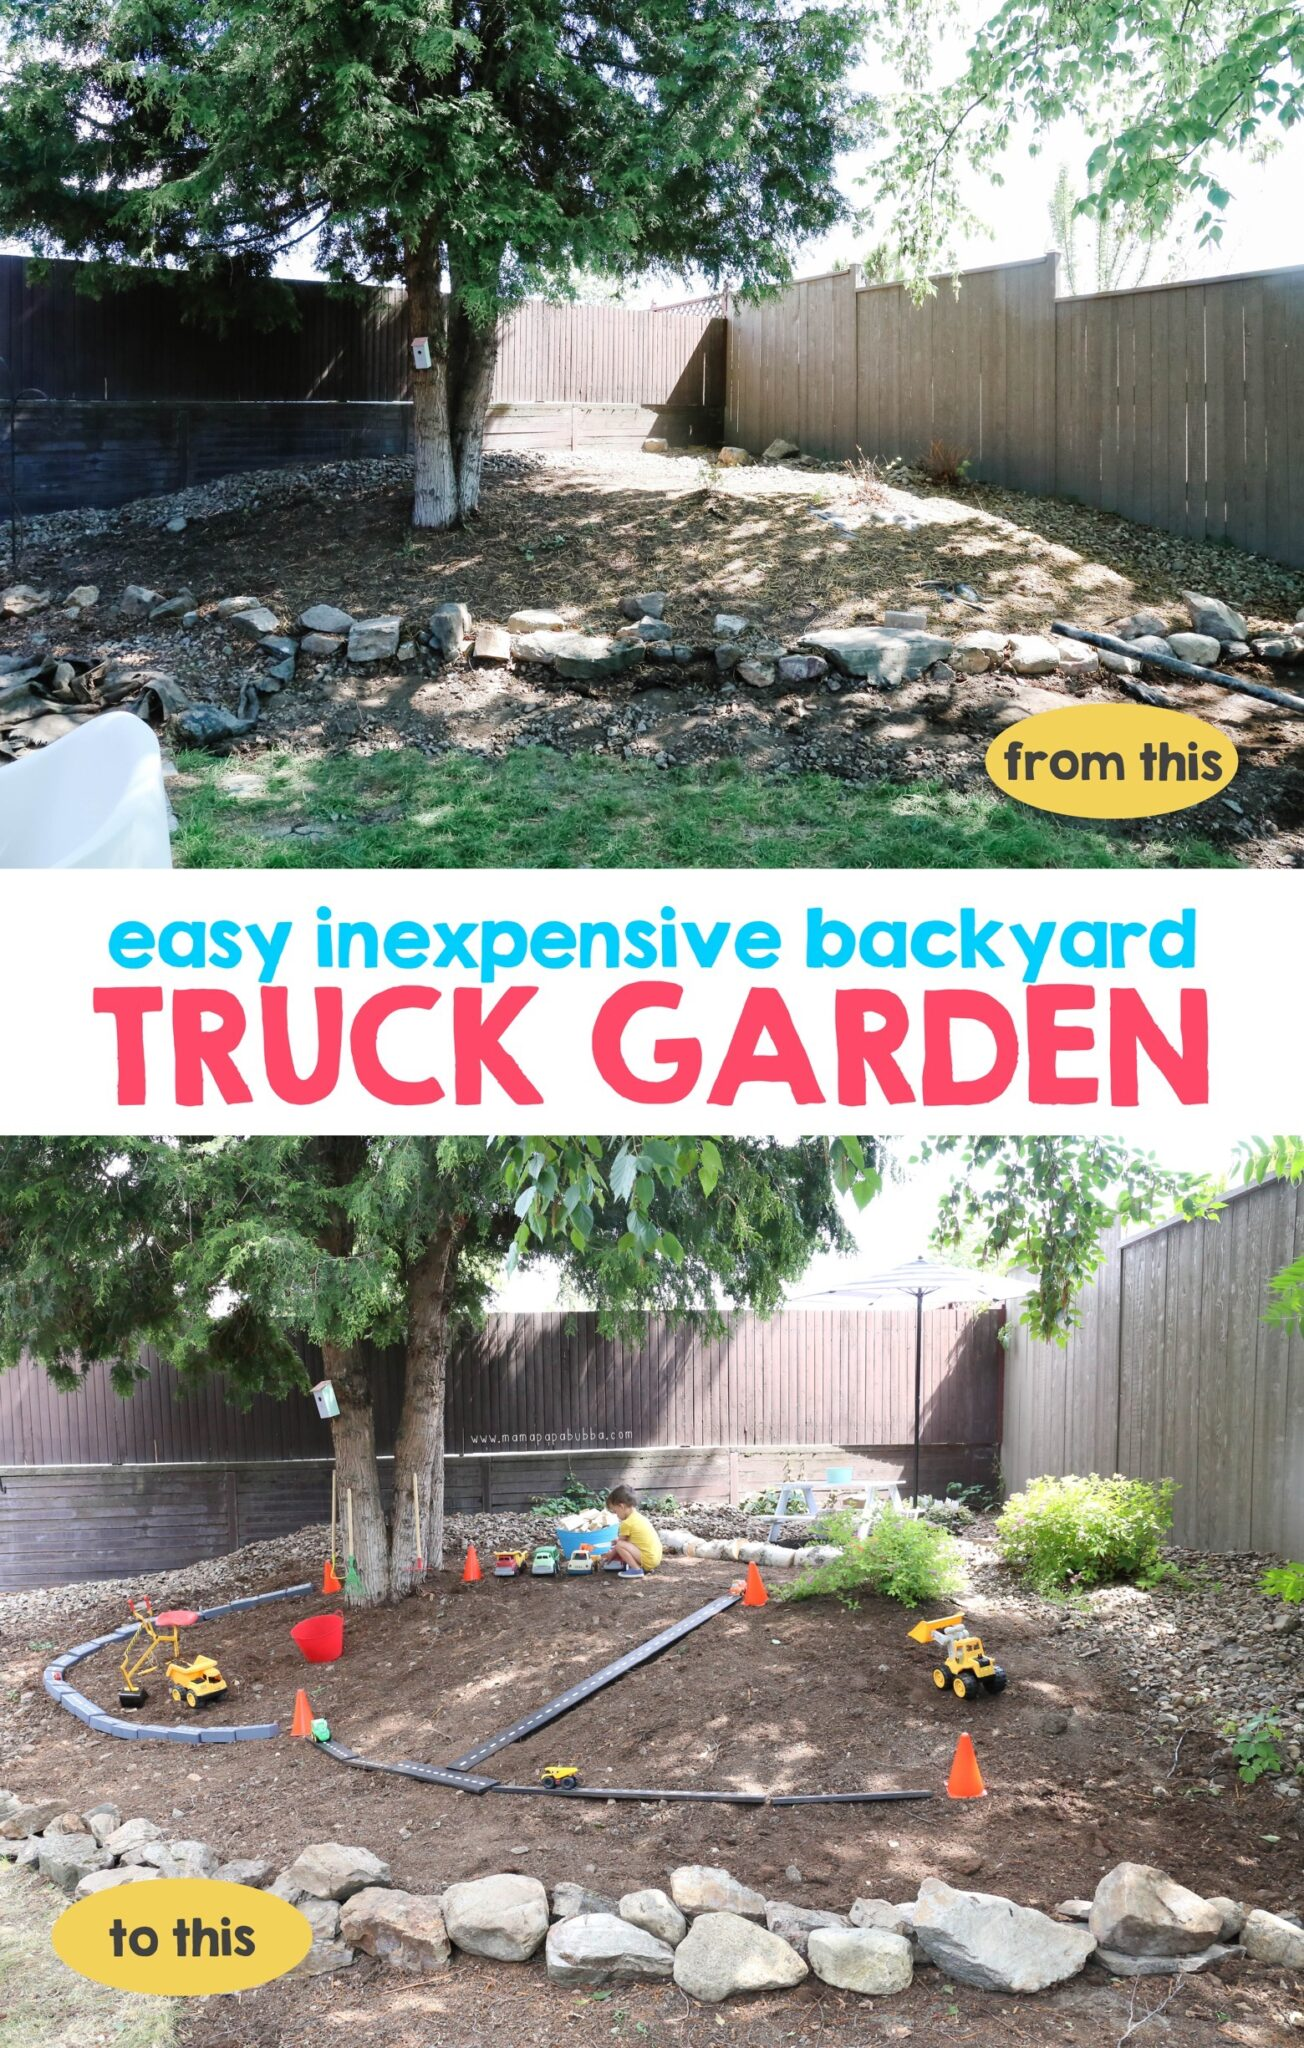 Easy Inexpensive Backyard Truck Garden | Mama Papa Bubba